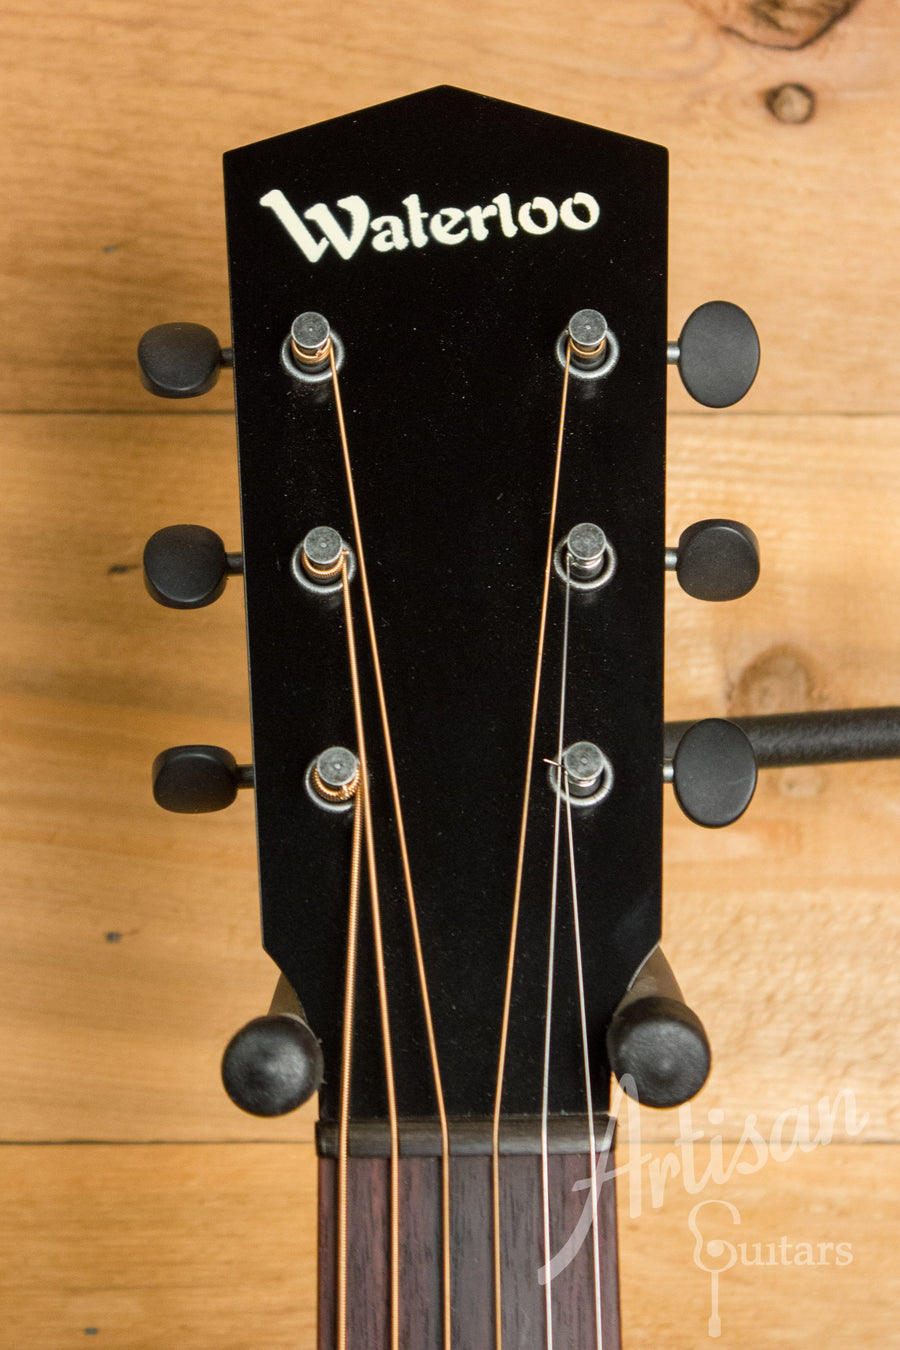 Waterloo WL-12X Maple Guitar with Truss Rod and Sunburst Finish ID-10959